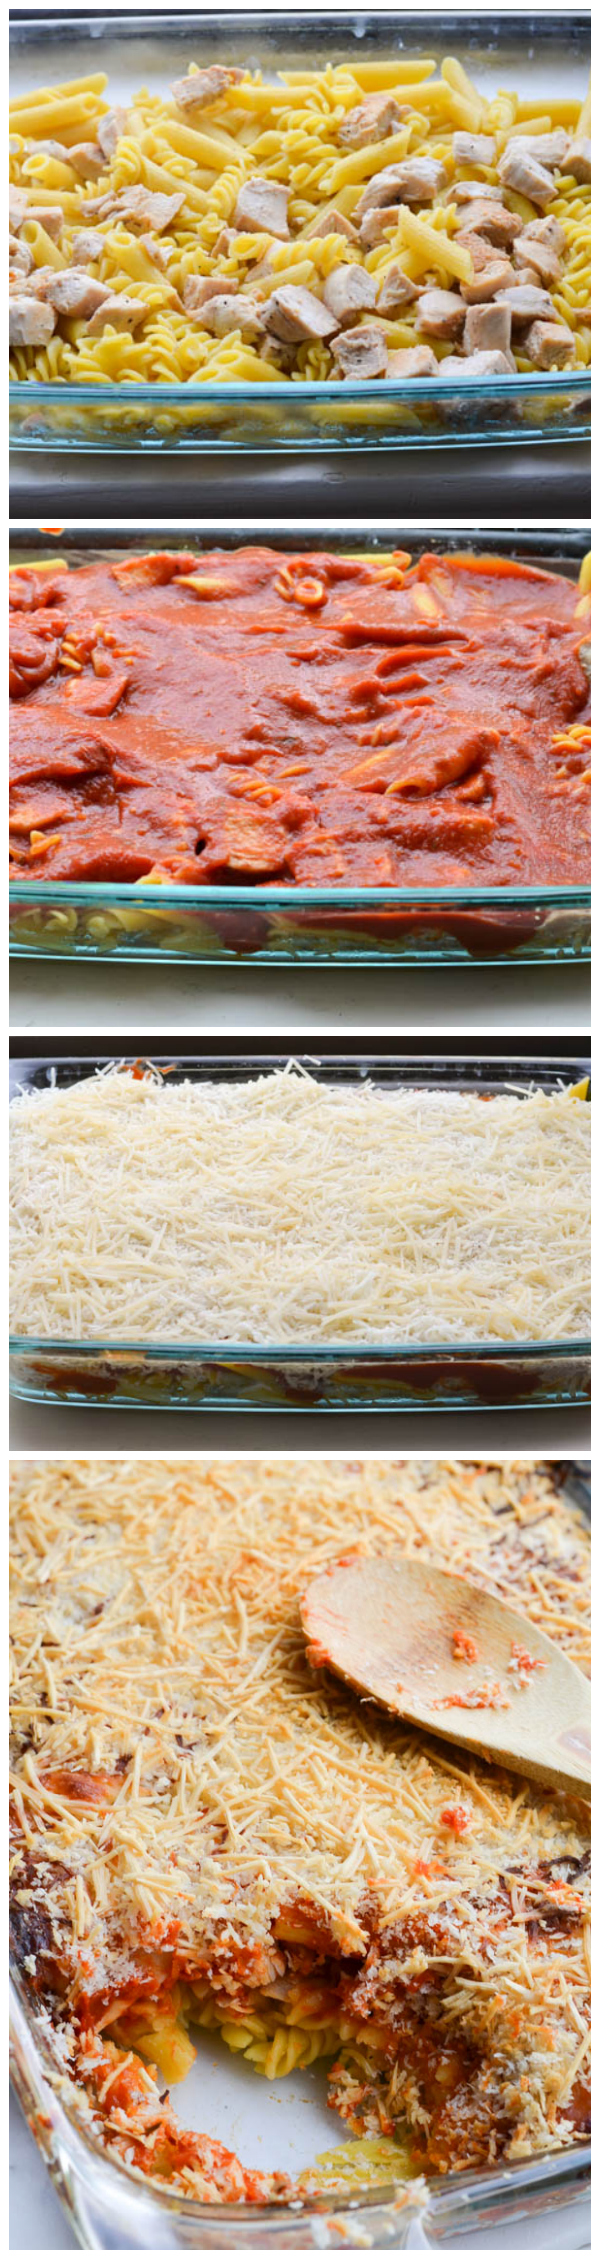 Baked Chicken Parmesan from Rachel Schultz.jpg